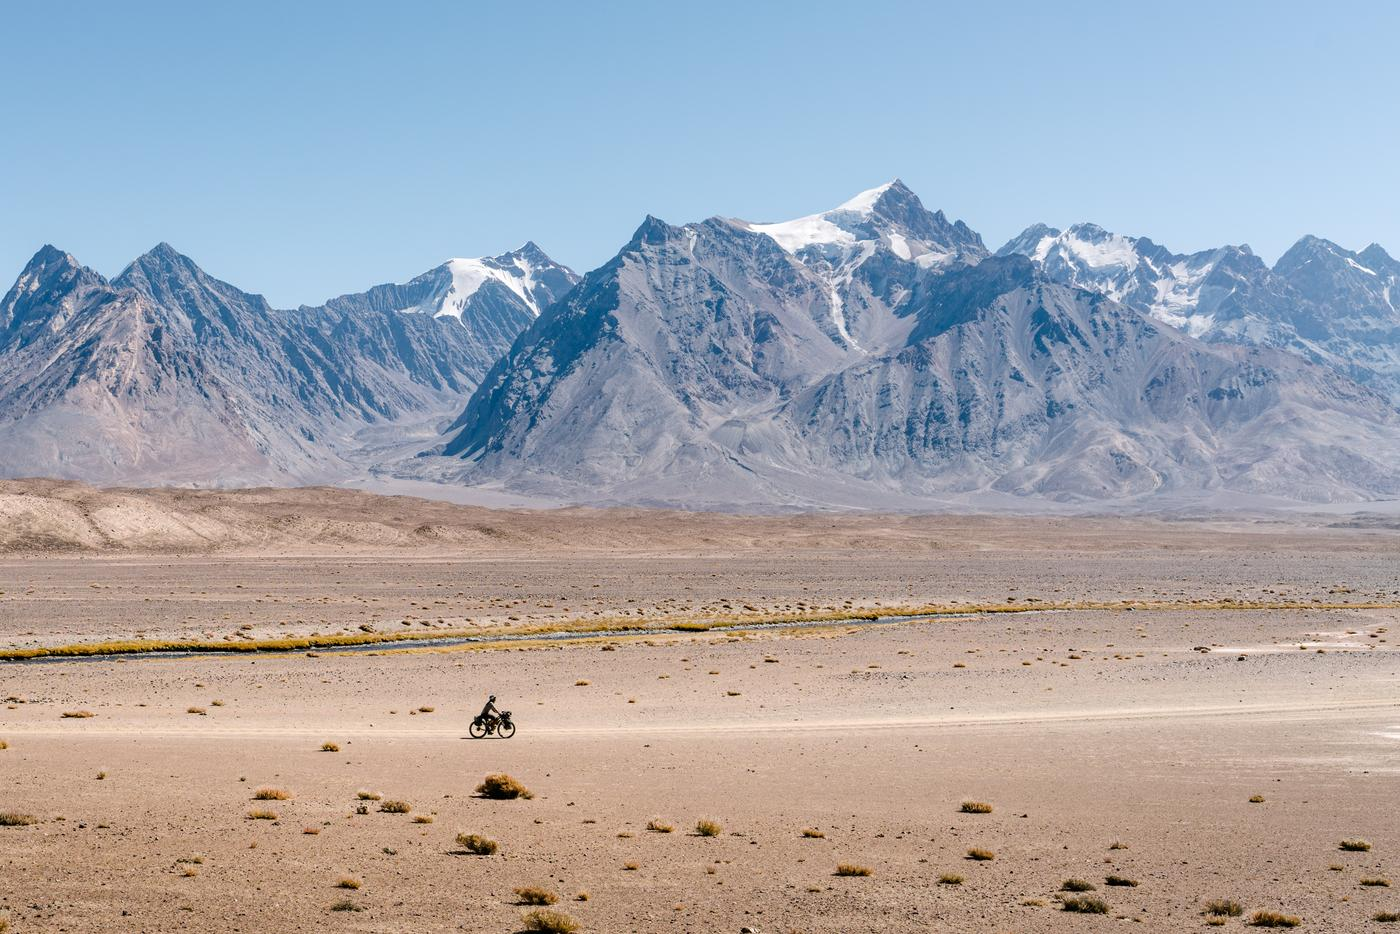 Frozen in Time: Riding Tajikistan's Bartang Valley